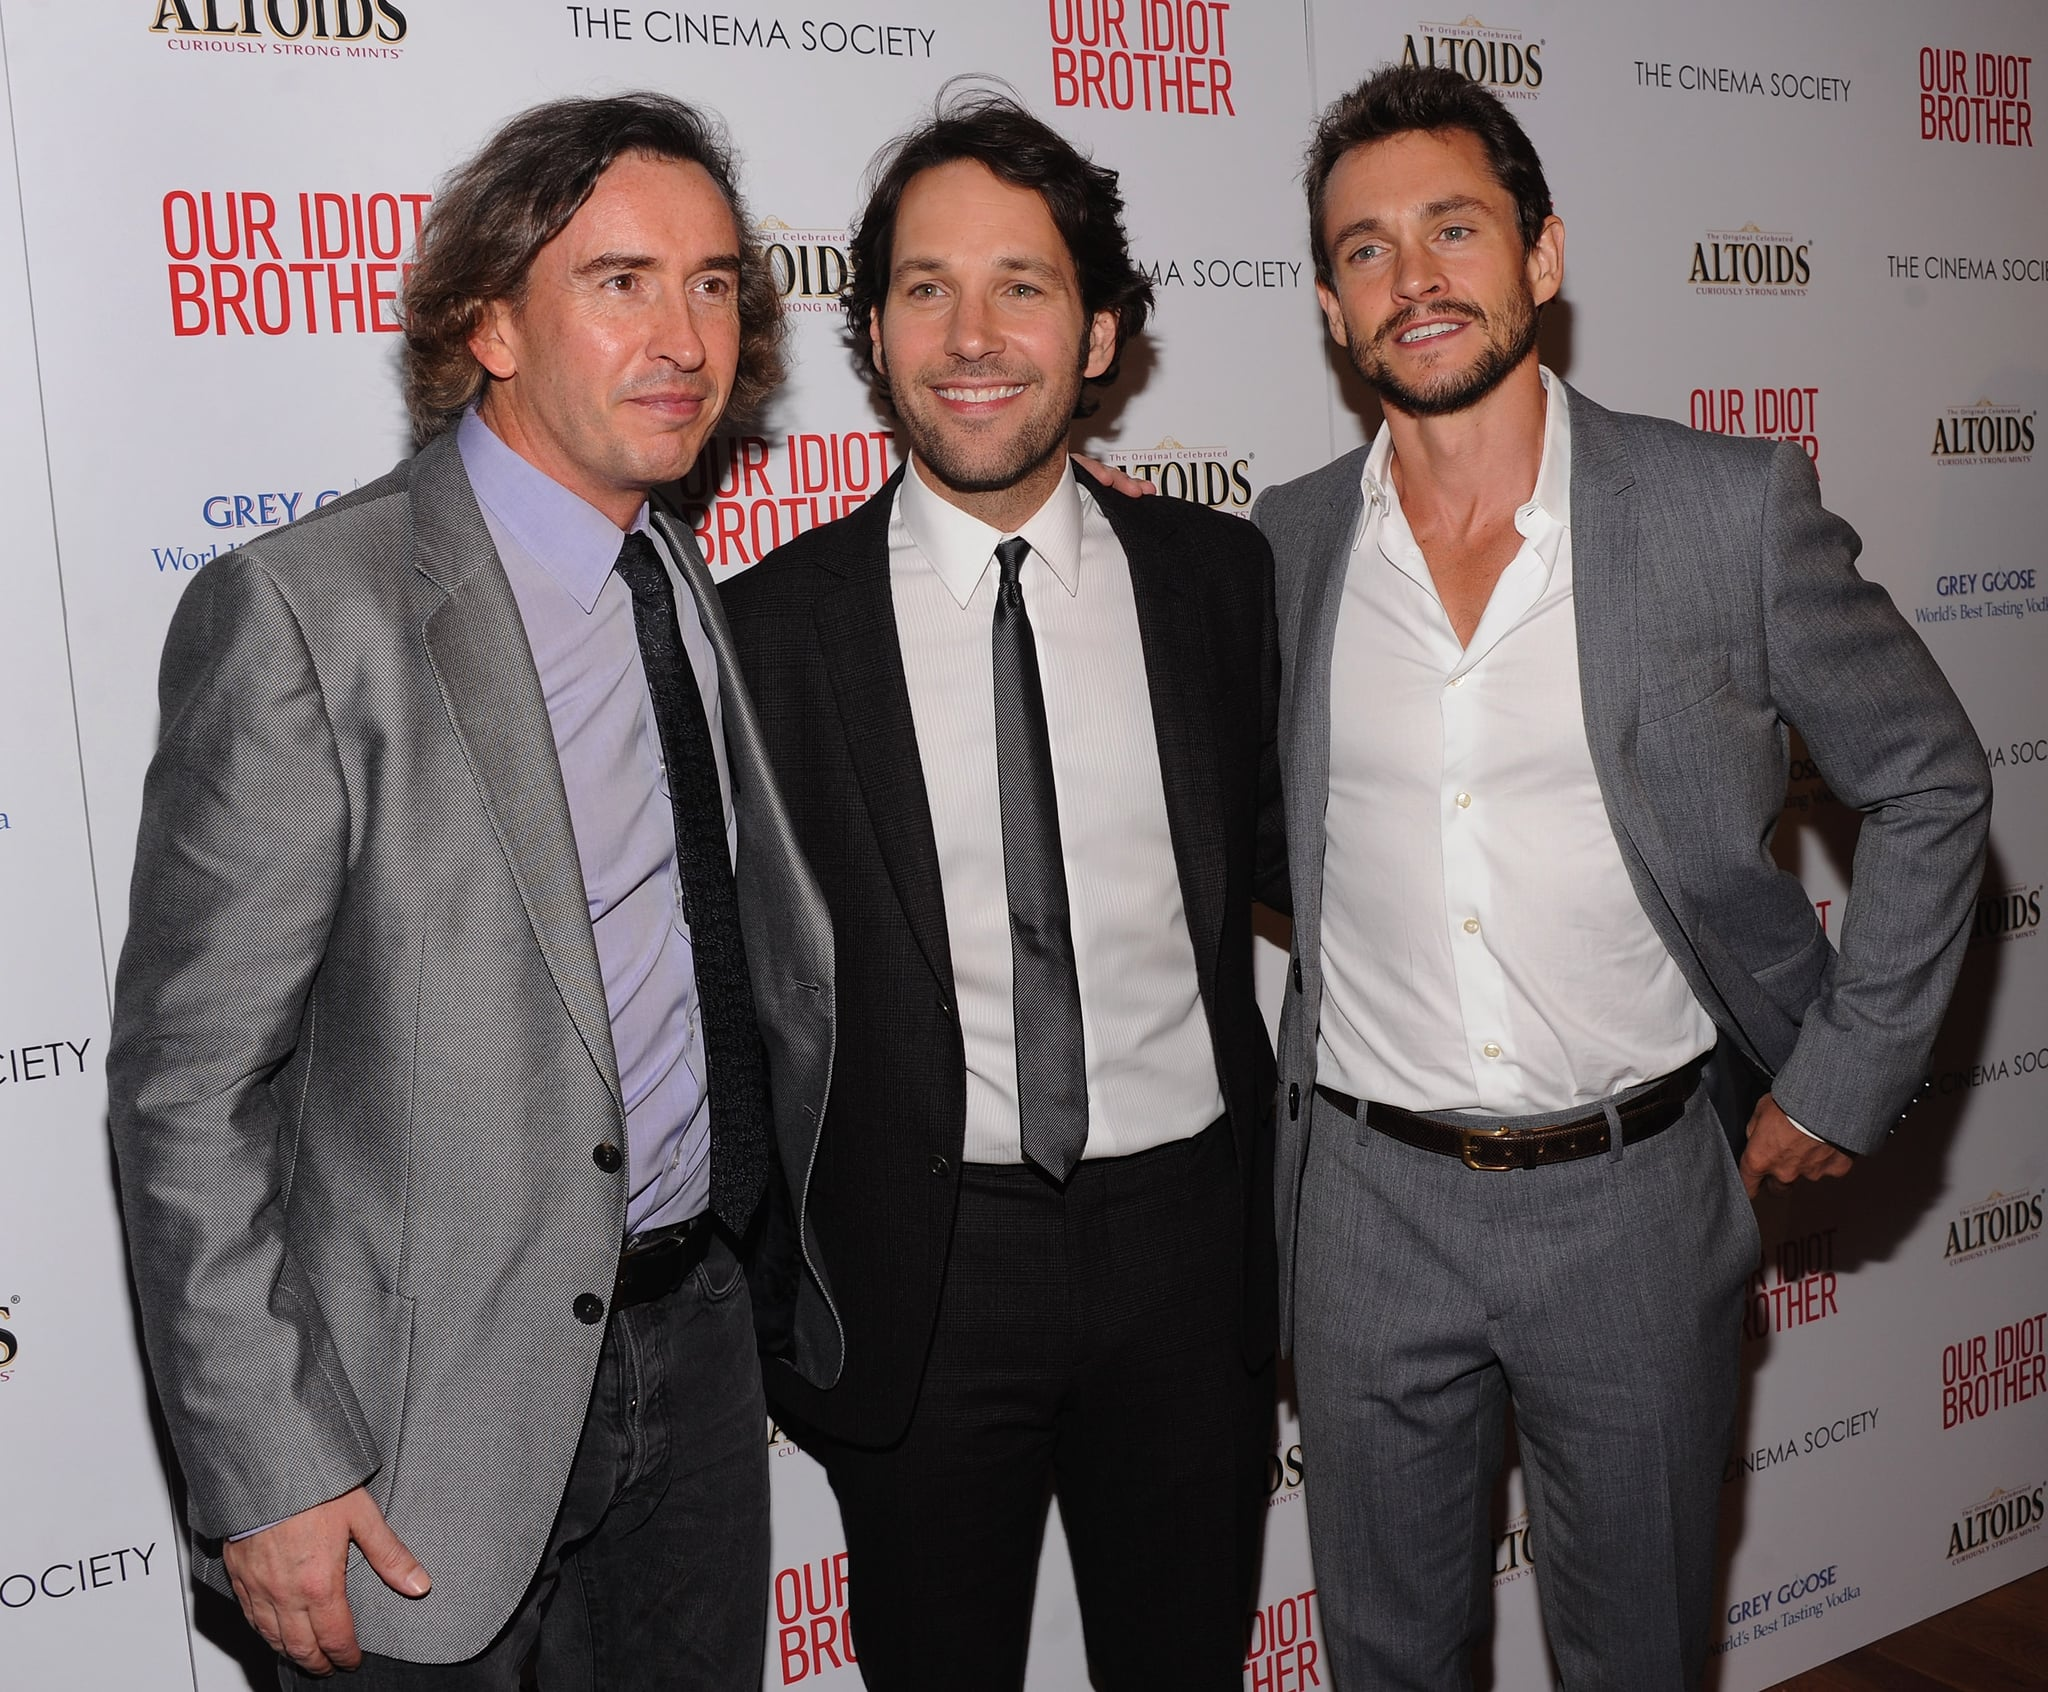 Steve Coogan, Paul Rudd and Hugh Dancy